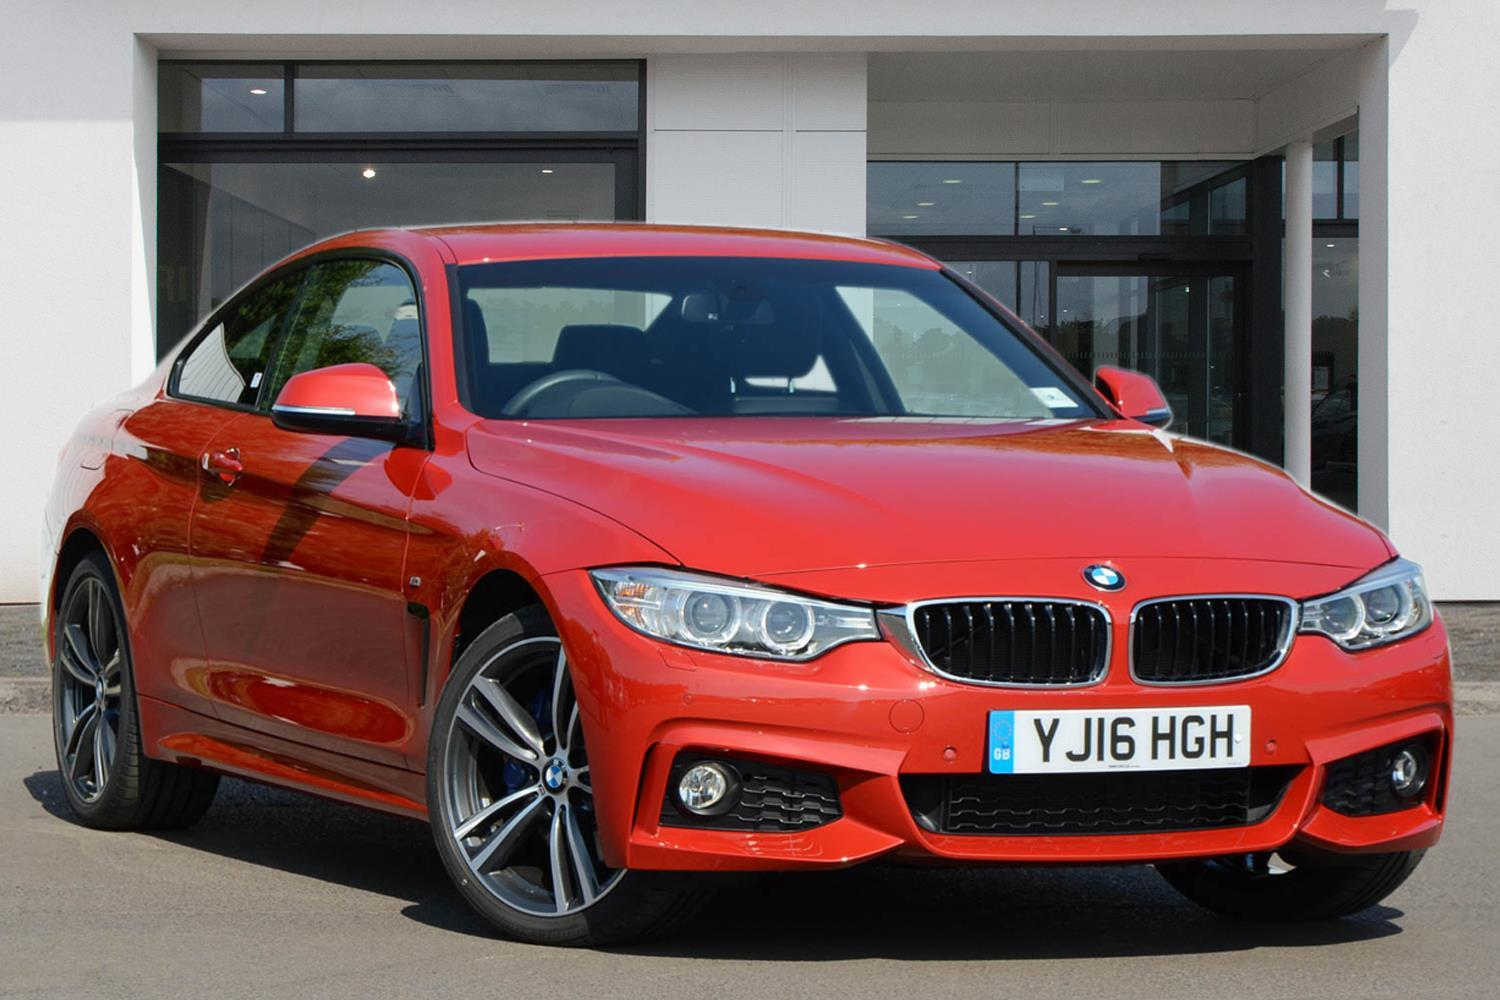 BMW 4 Series Coupé YJ16HGH - Image 8